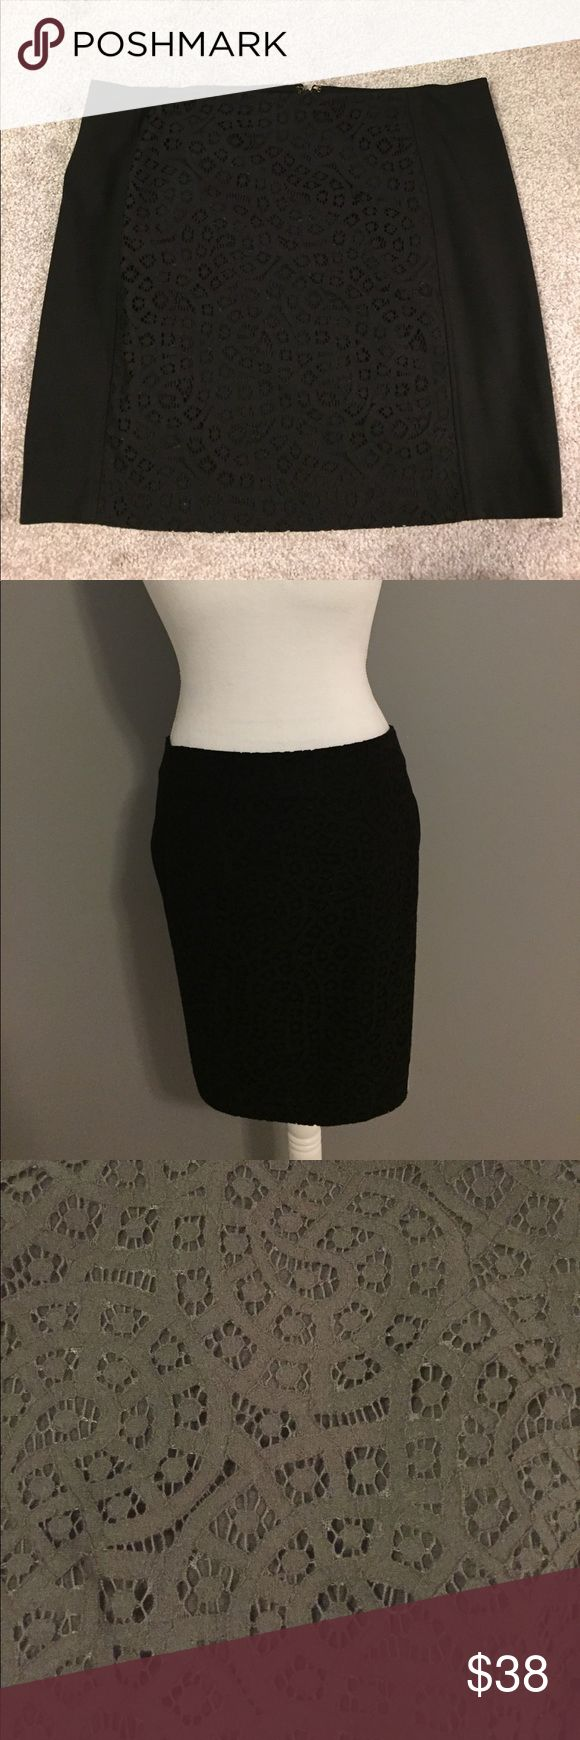 "LOFT: Black Pencil Skirt w/ Lace Detail 18"" black pencil skirt - never been worn!! Zips up the back. LOFT Skirts Pencil"